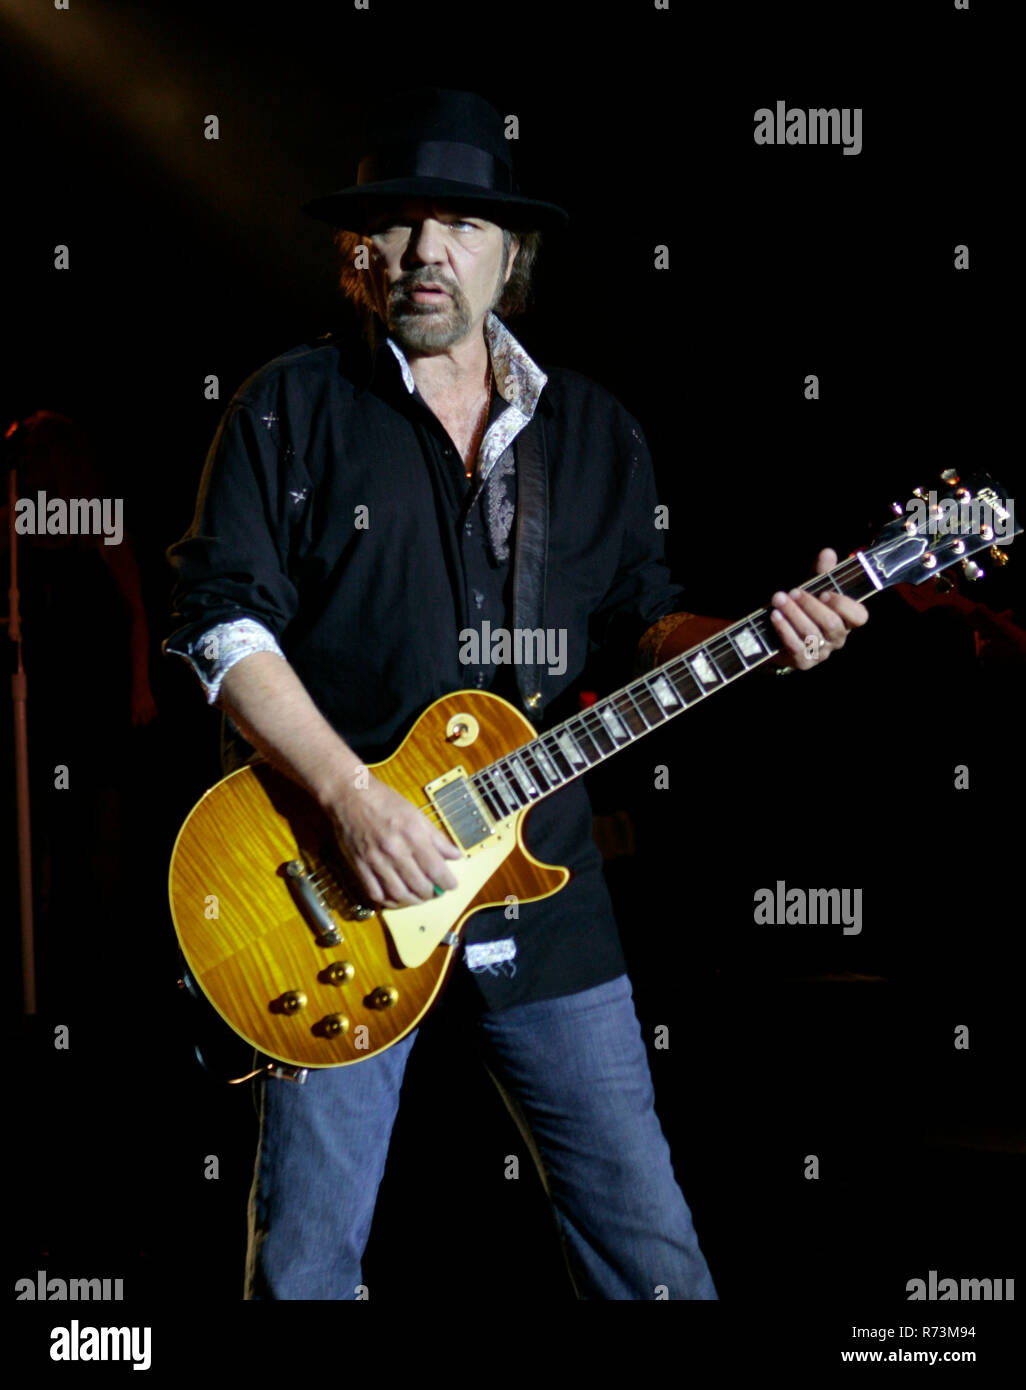 Gary Rossington of Lynyrd Skynyrd performs in concert at the Pompano Beach Amphitheater in Pompano Beach, Florida on April 14, 2007. Stock Photo